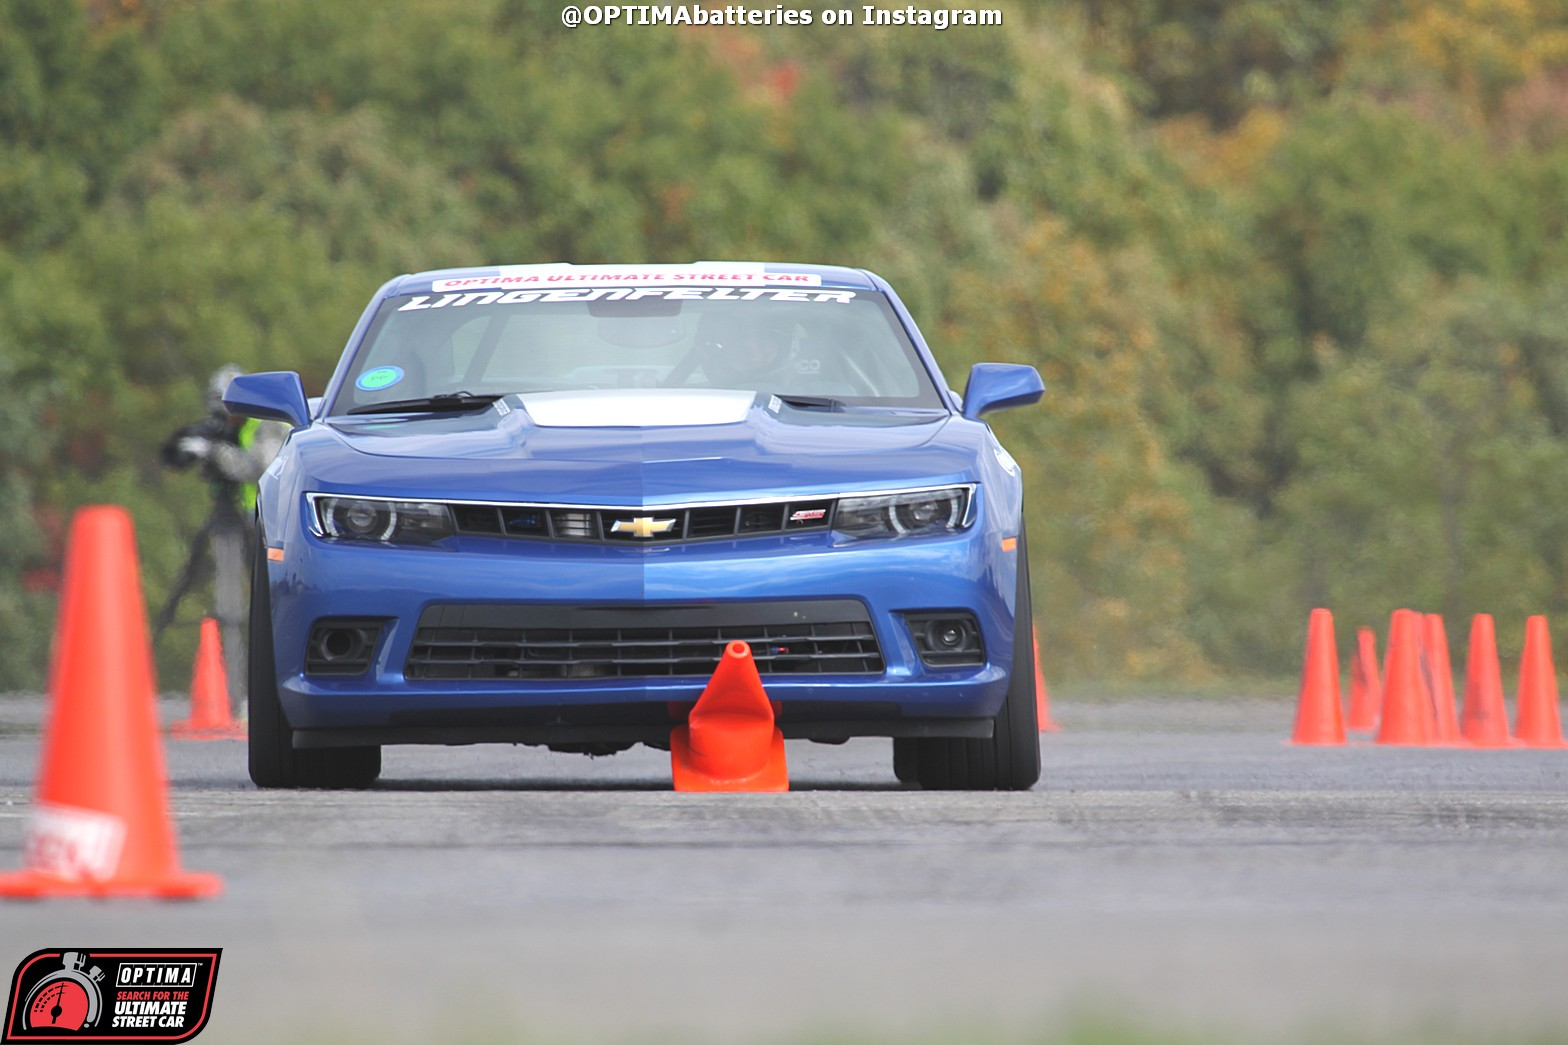 2014 OUSCI Preview- Chris Jacobs in the Lingenfelter L28 Camaro